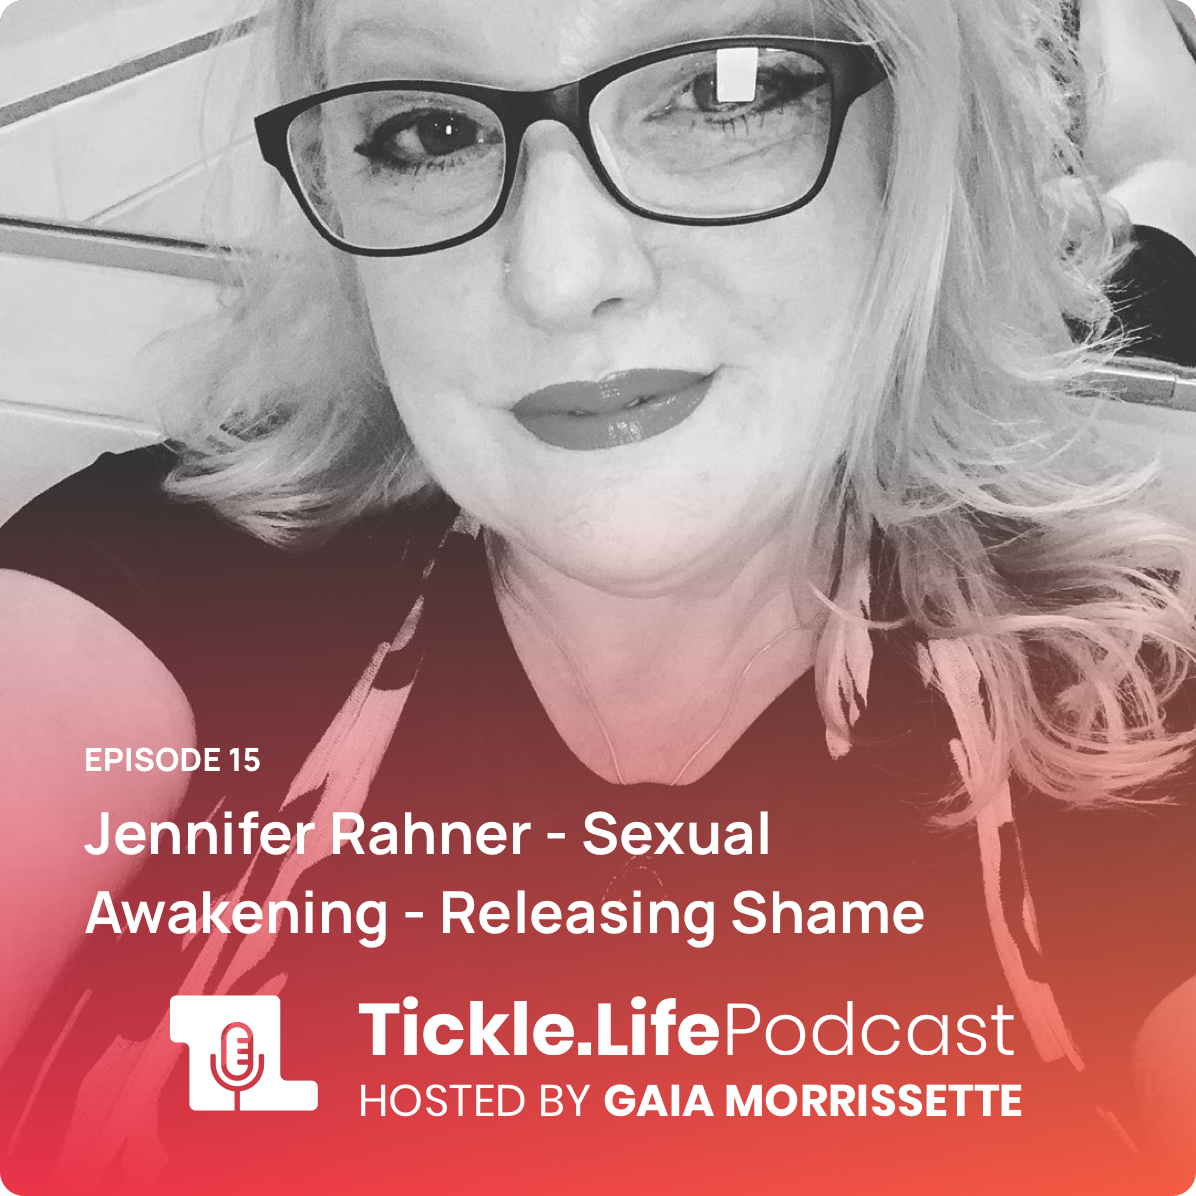 Tickle.Life Podcast - Jennifer Rahner - Sexual Awakening - Releasing Shame